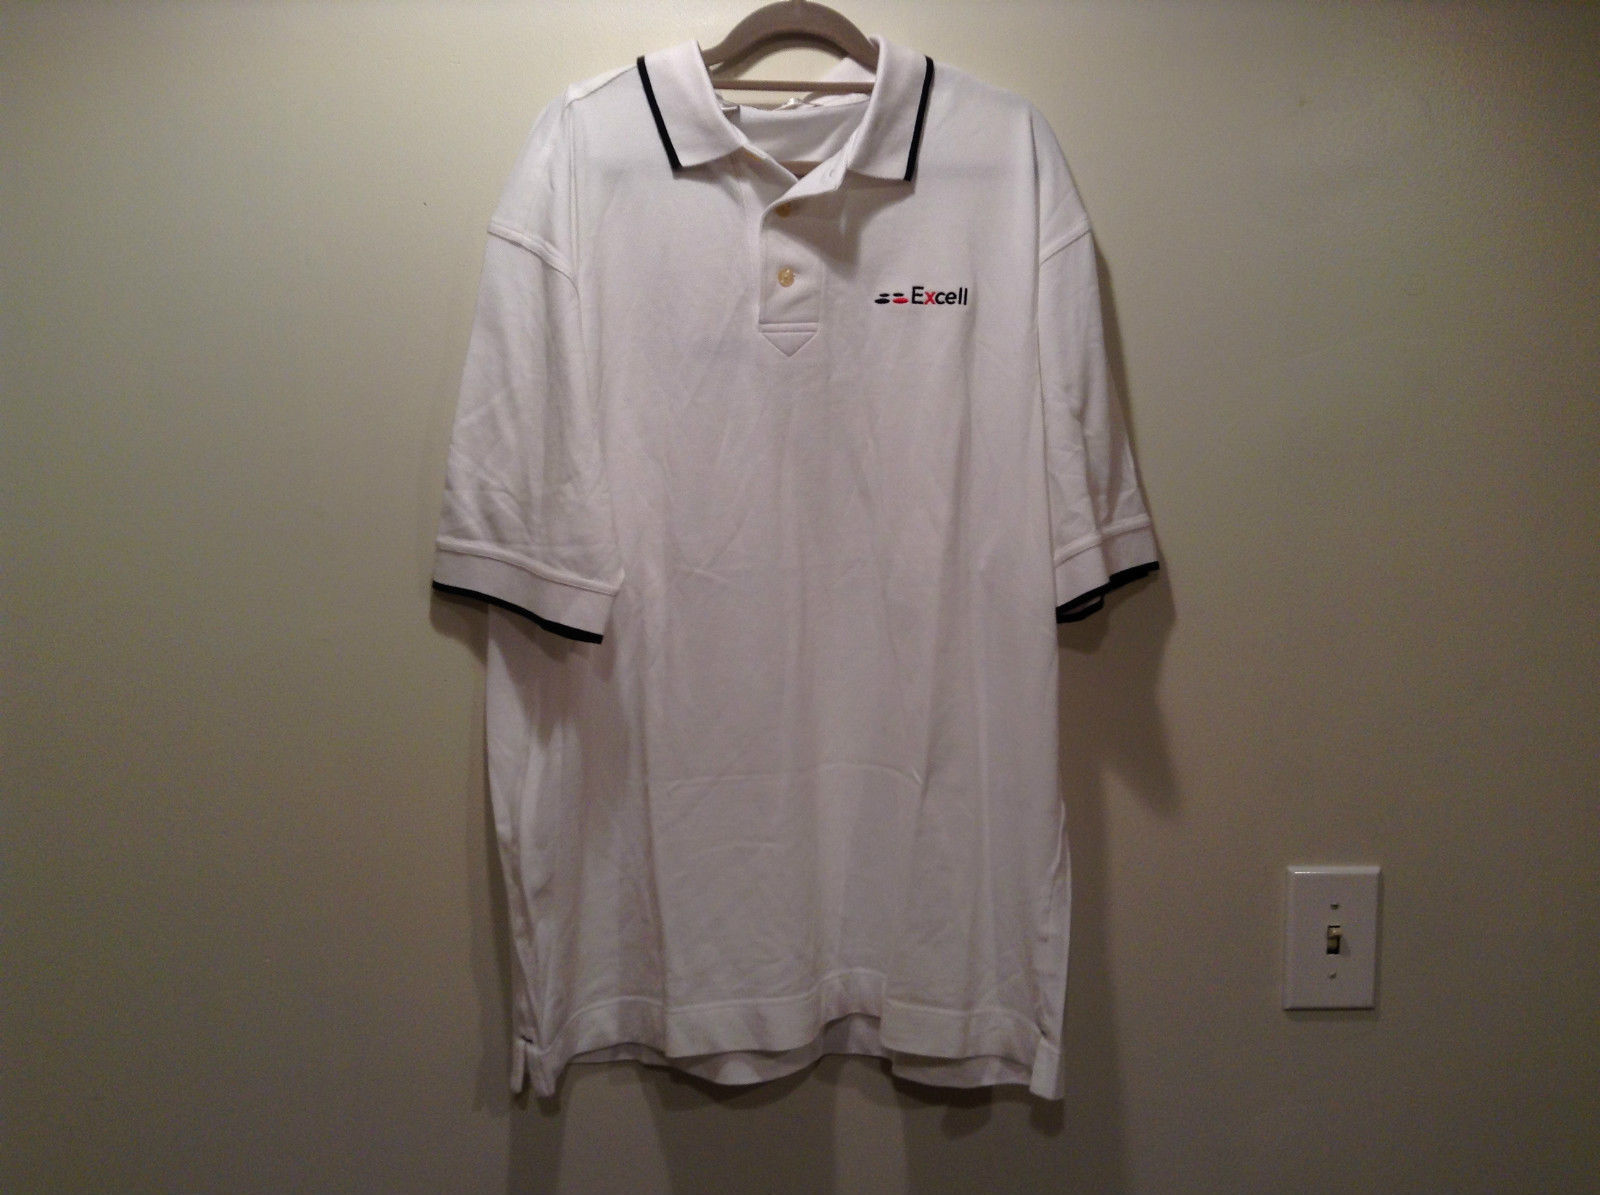 Cutter and Buck White Short Sleeve Polo Shirt Size XL New with Tags Excell